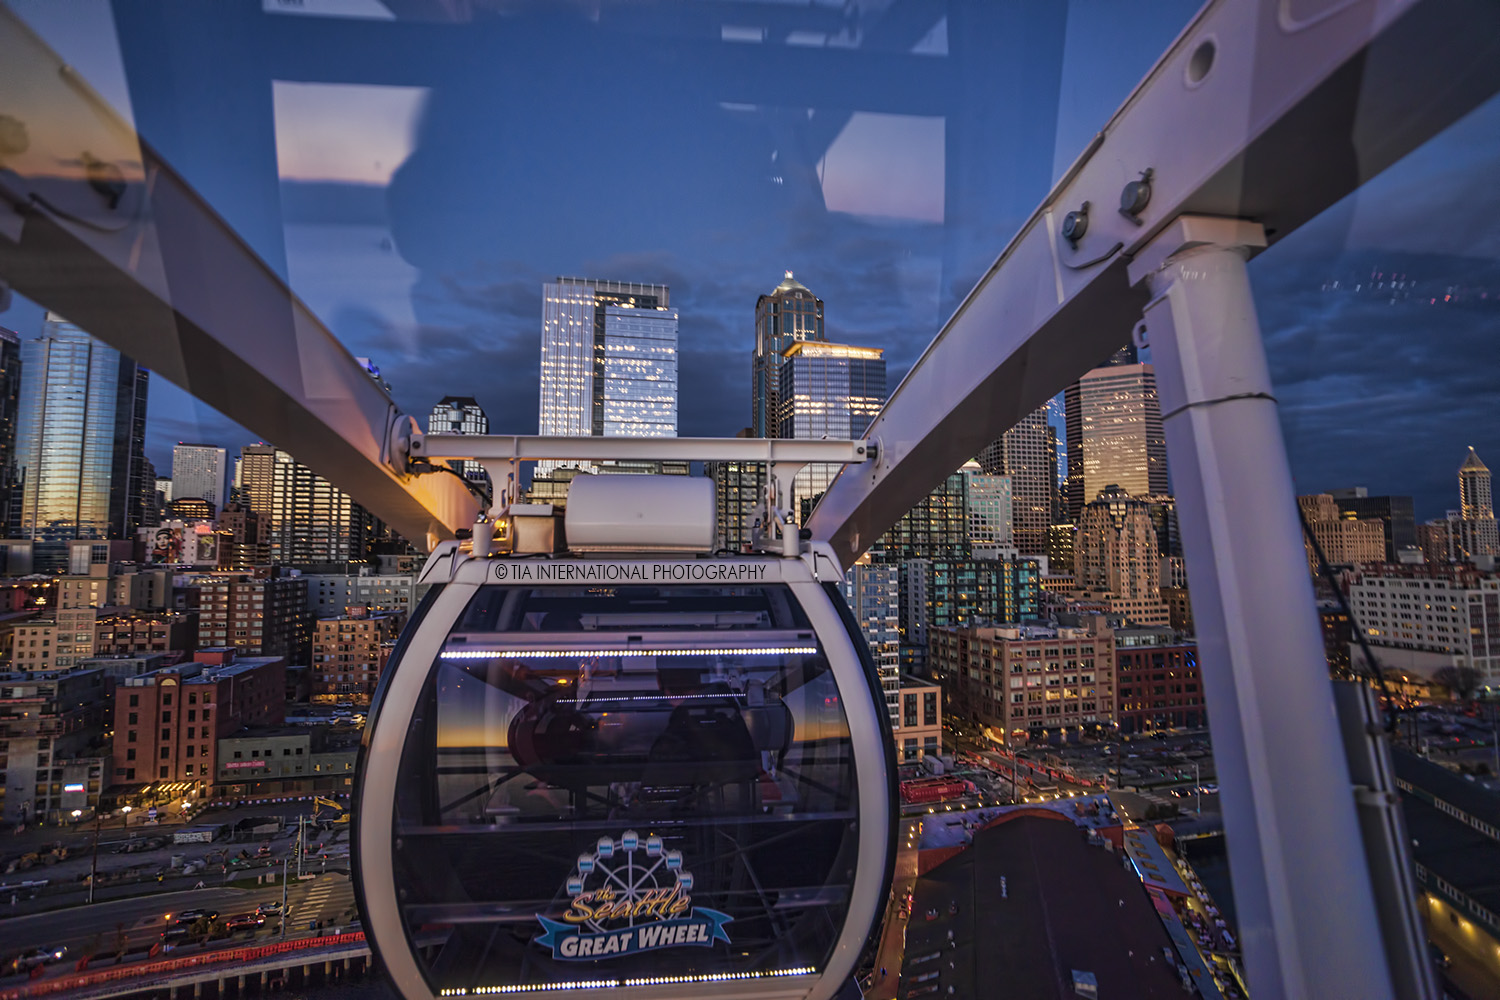 Inside the gondola at the Seattle Great Wheel.